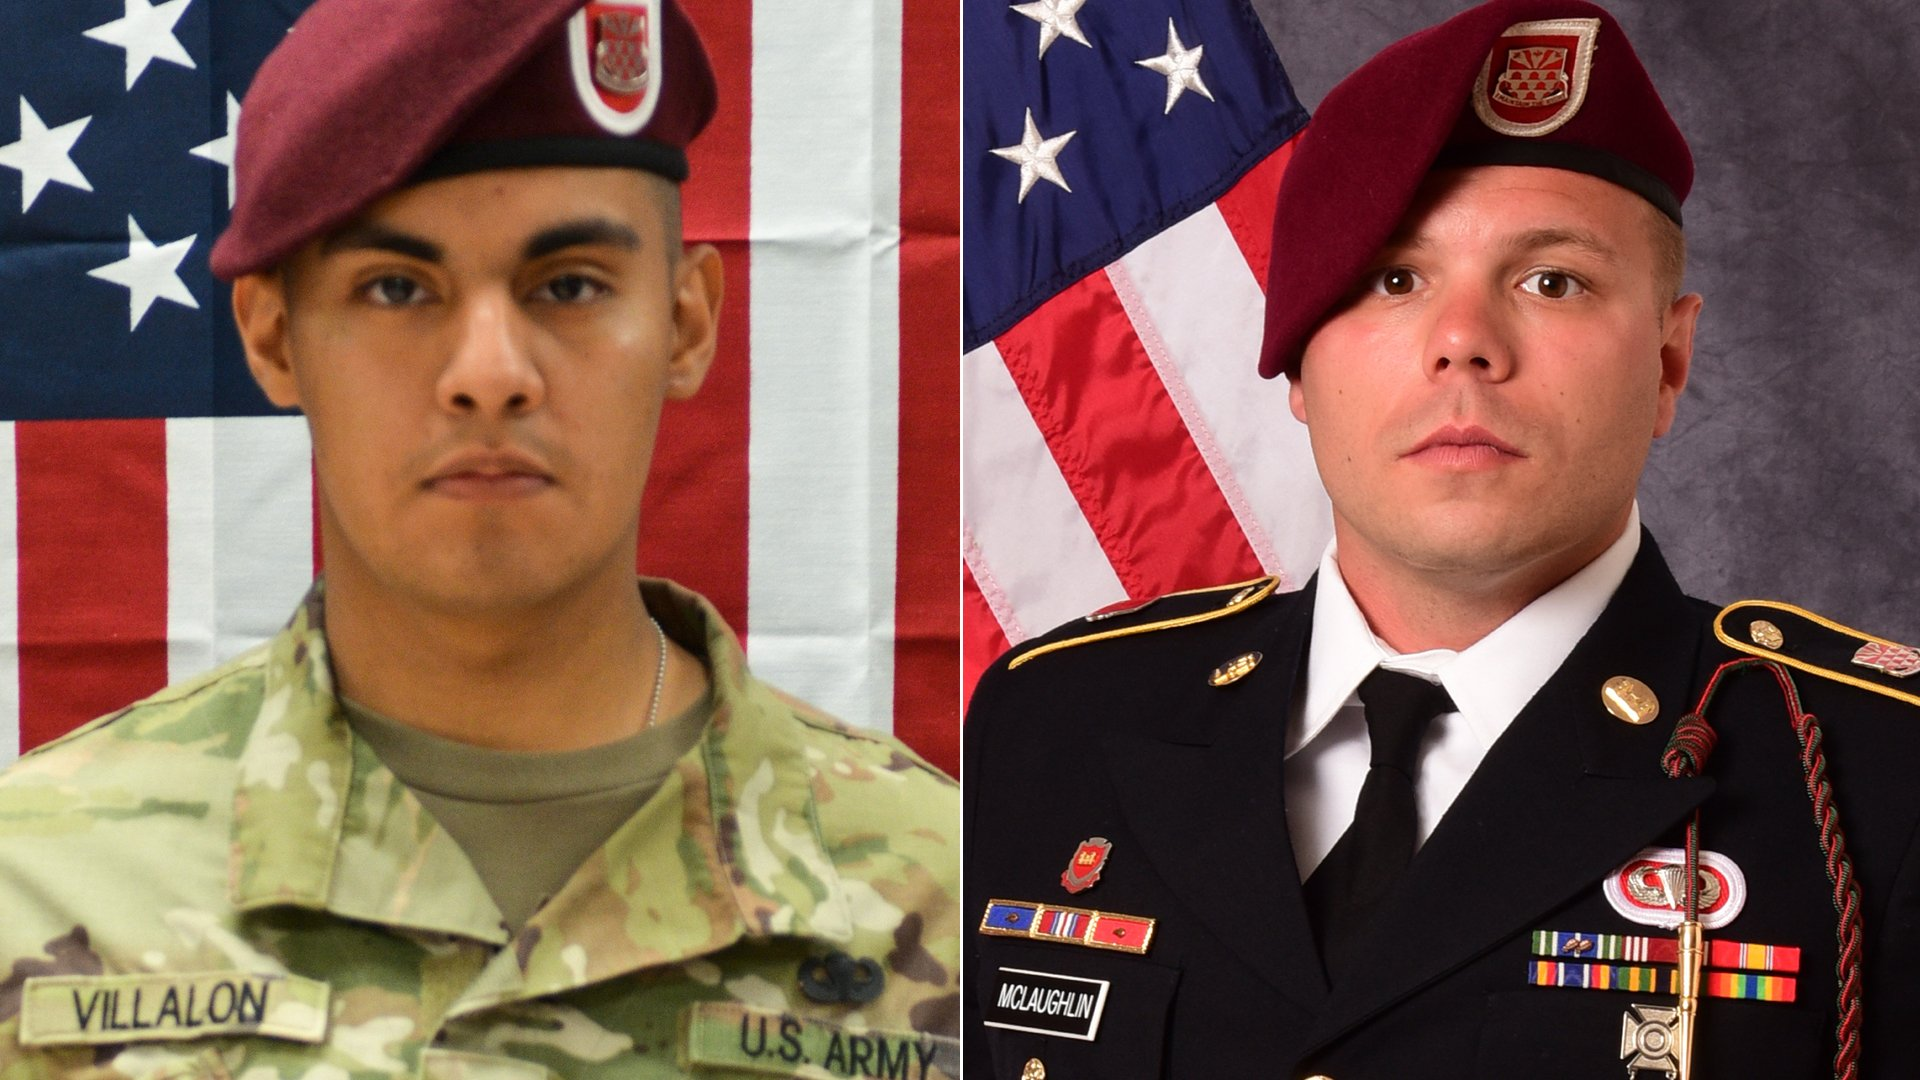 Pfc. Miguel A. Villalon, left, and Staff Sgt. Ian P. McLaughlin appear in images released by the U.S. Department of Defense on Jan. 12, 2020.